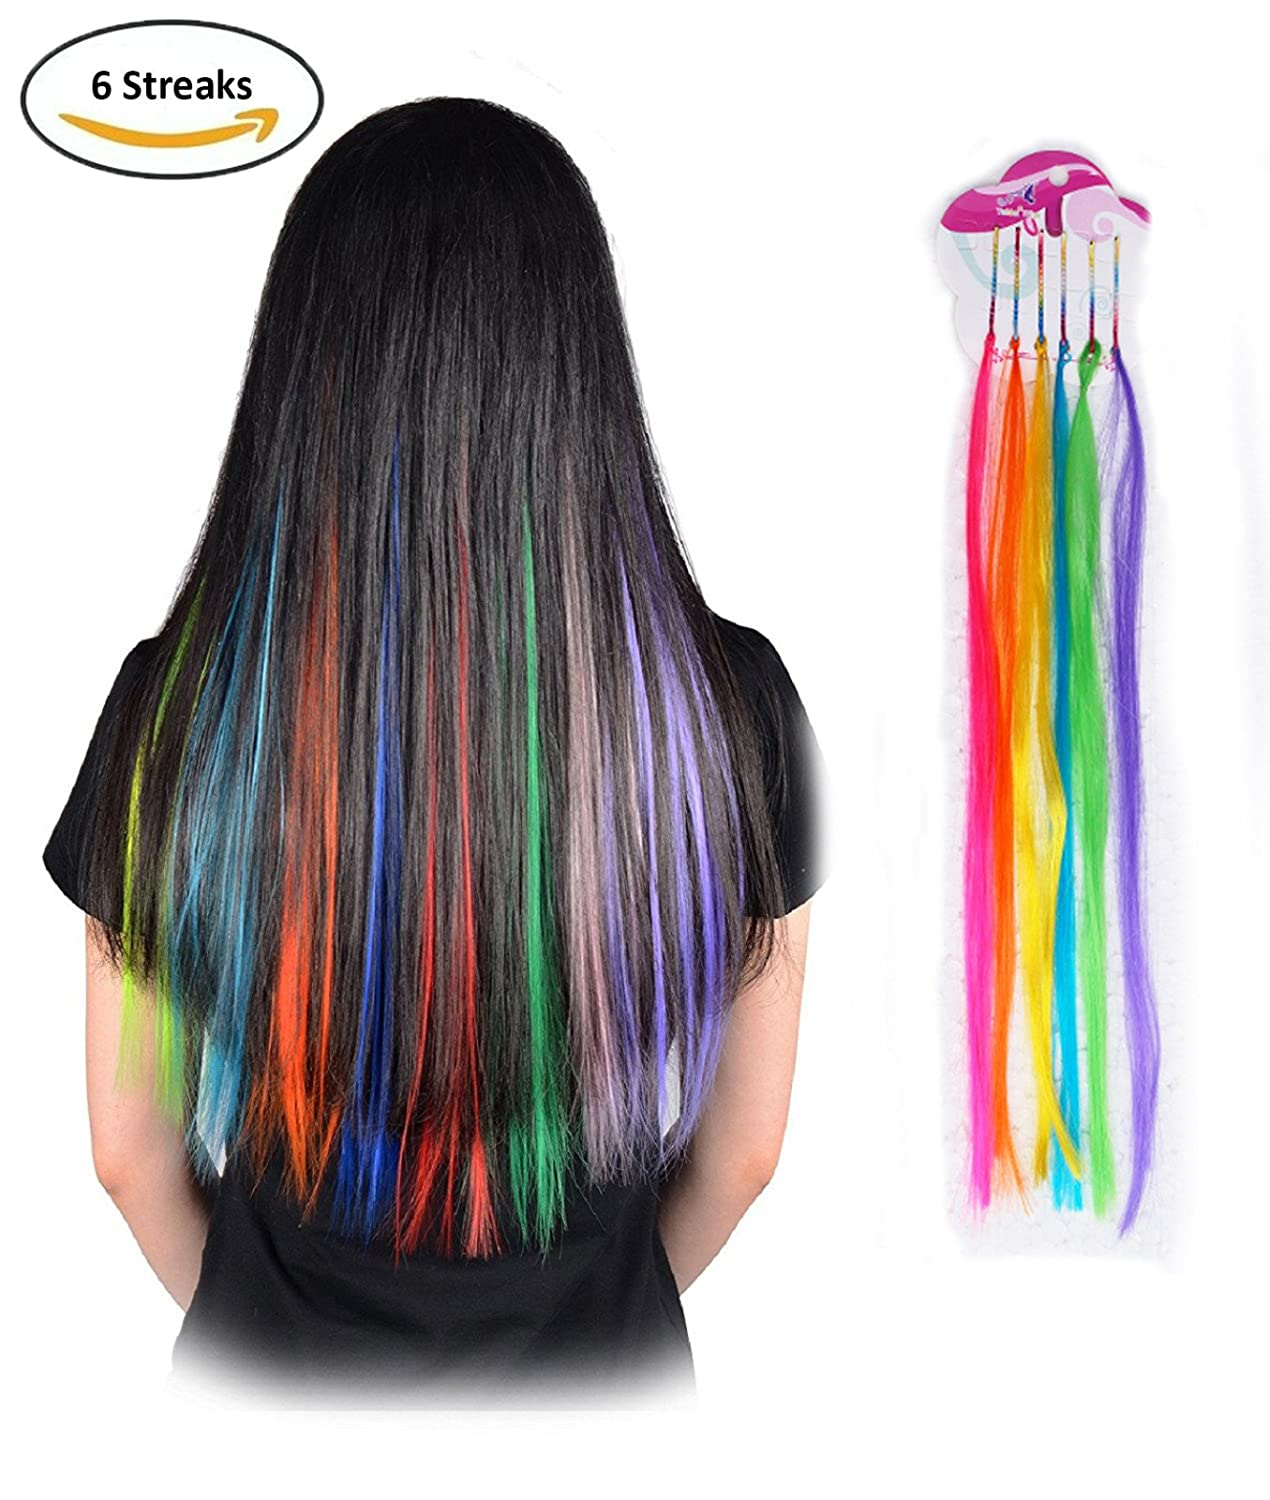 Fok Set of 6 Multi Color Party Highlights Hair Extensions Colorful Hair  Streaks Hairpieces (Bright)